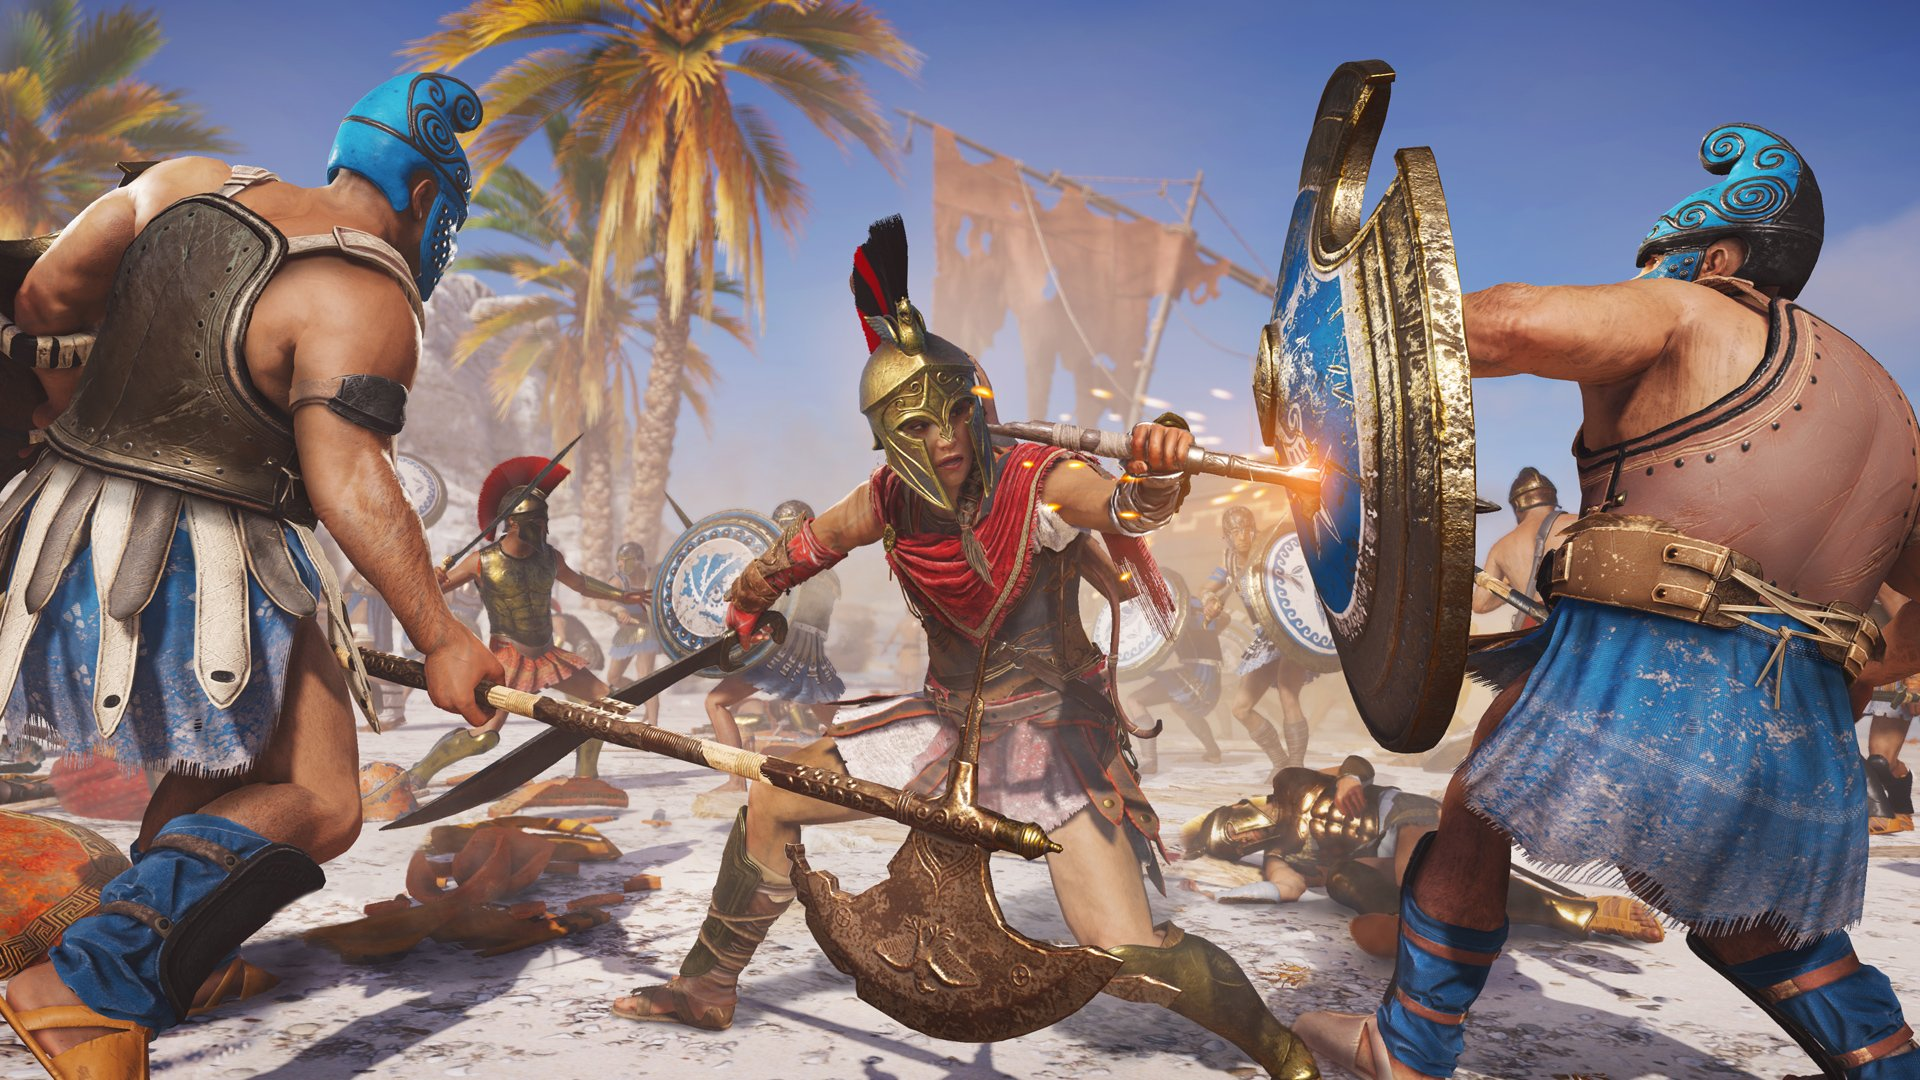 A Spartan battle unfolds in Assassin's Creed Odyssey.